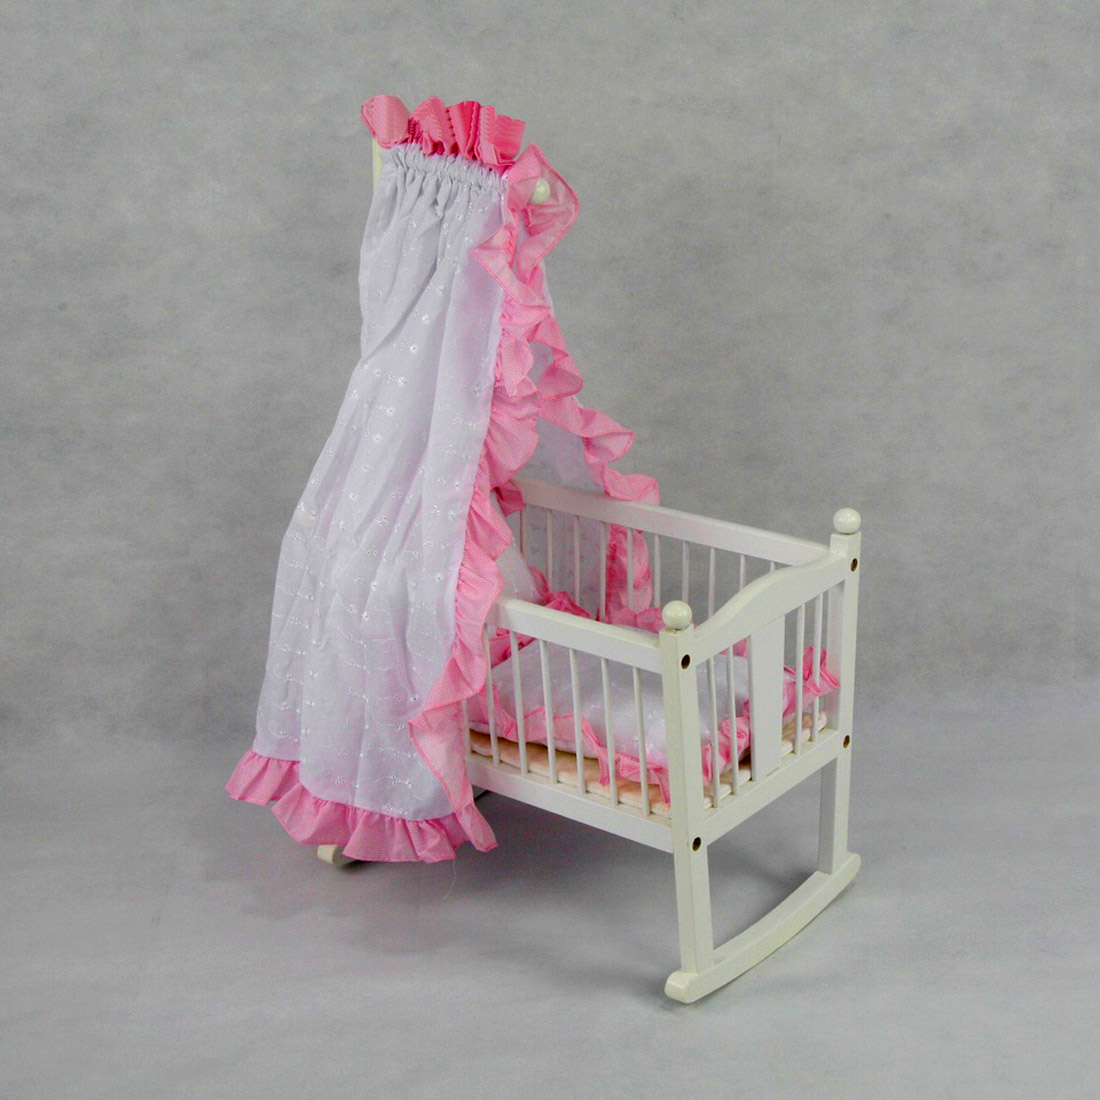 Baby crib mattress comparison - Doll Accessories Doll Carriages Strollers Carriers Samantha